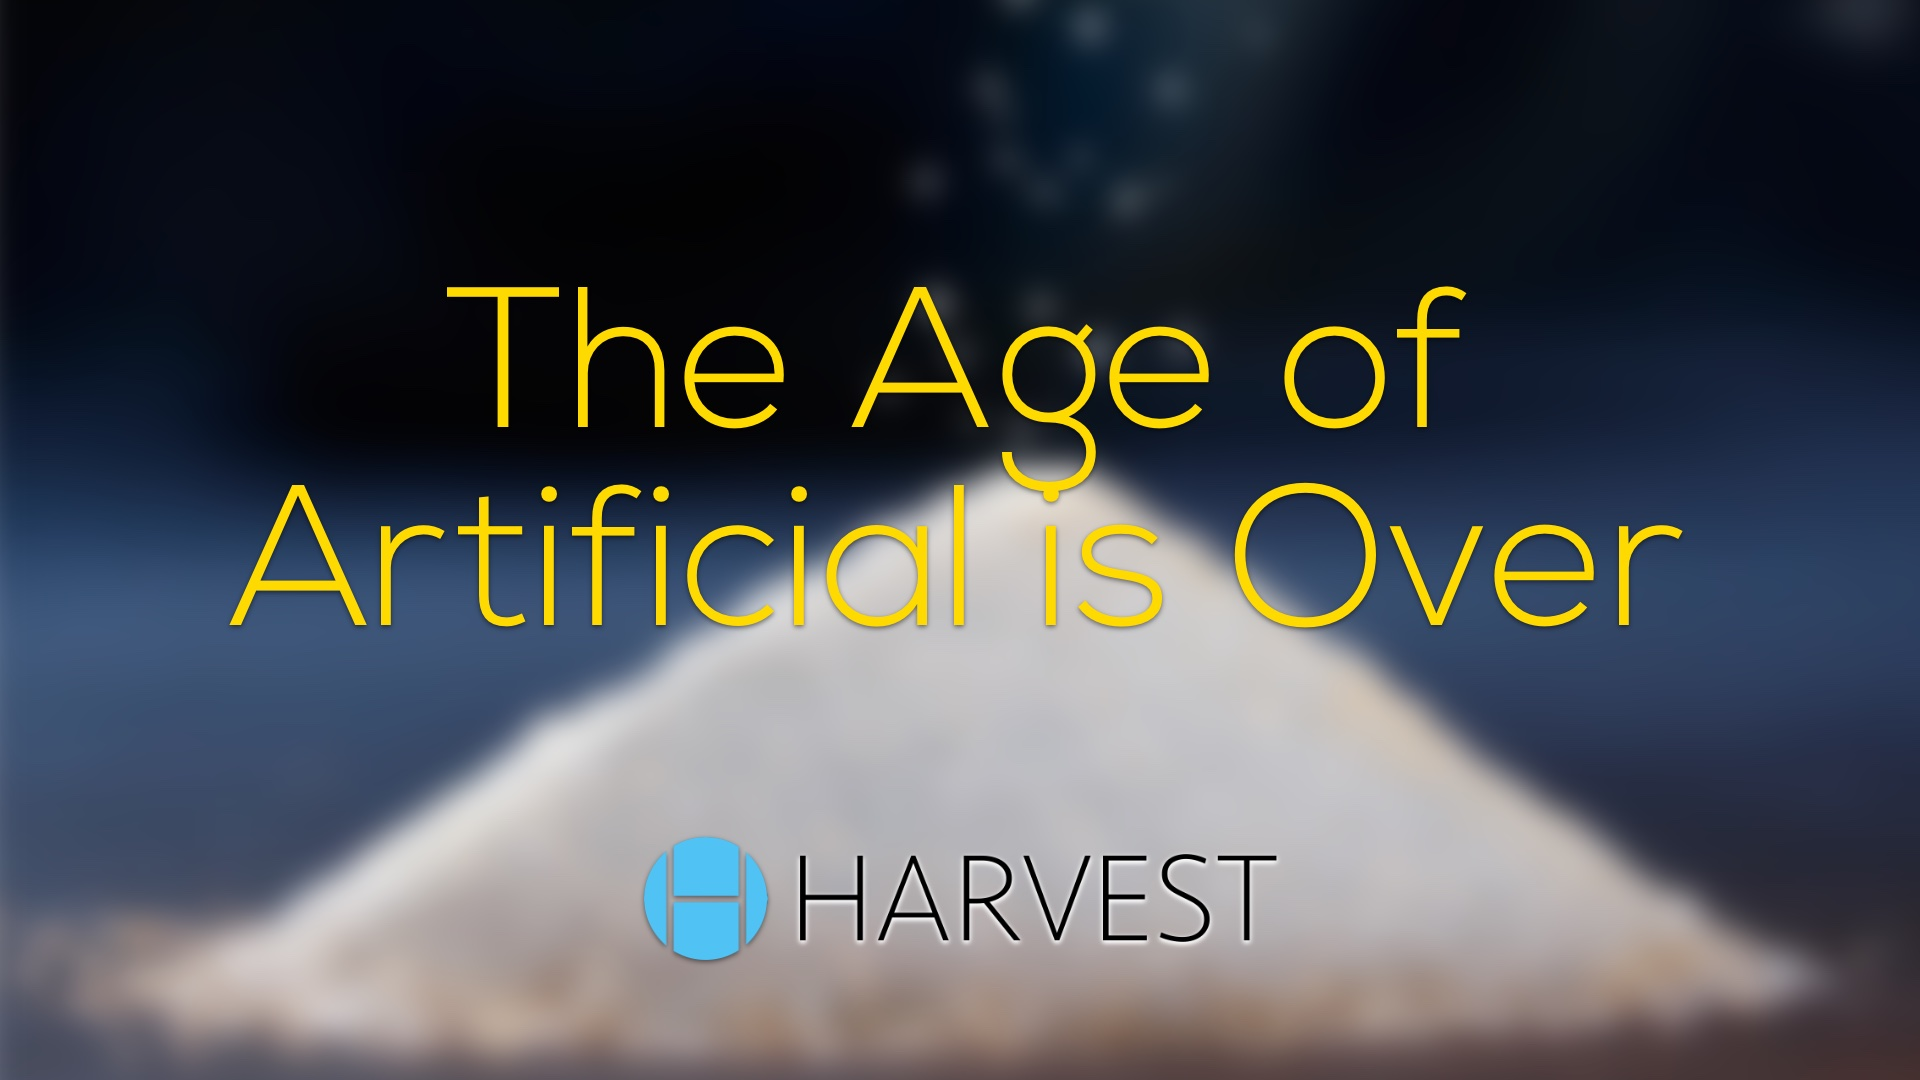 The Age of Artificial is Over